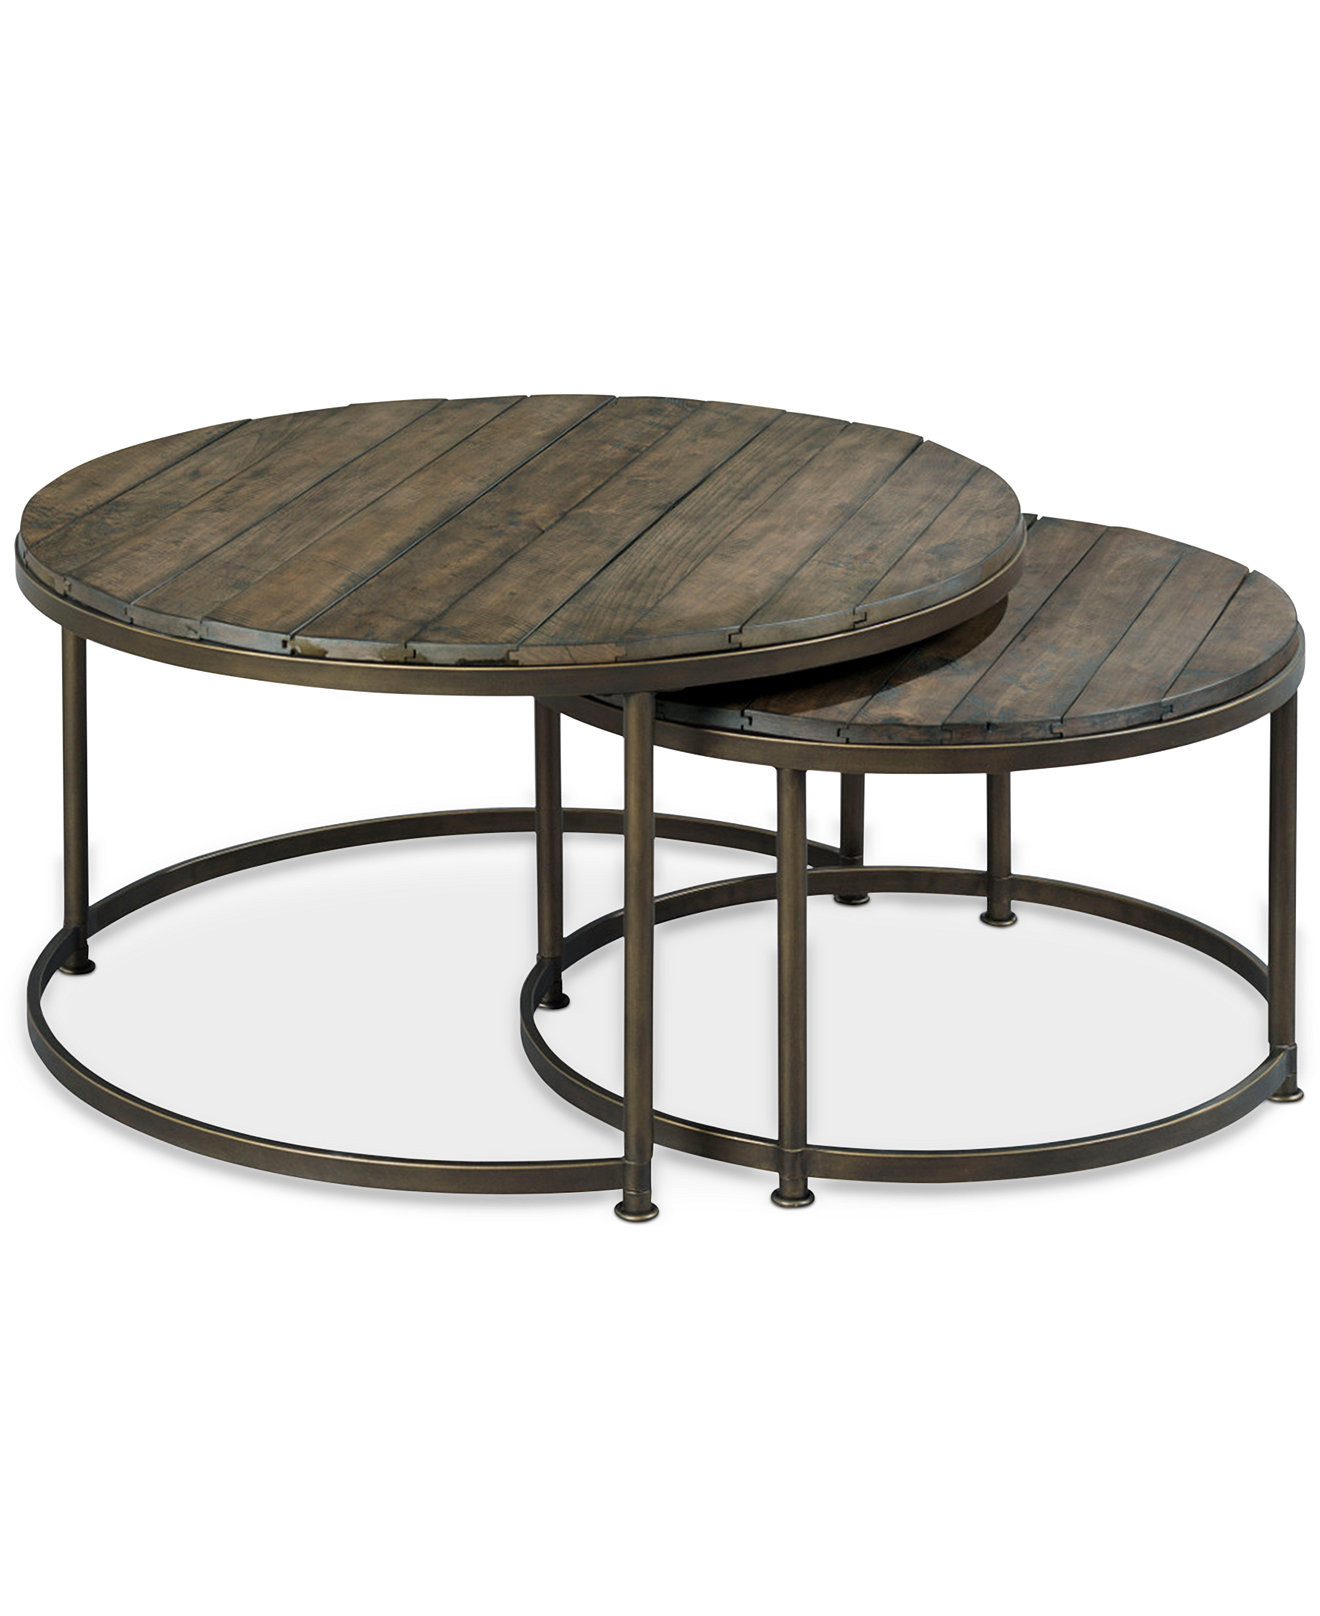 Coffee Tables End Side And Accent Table Link Wood Set Of 2 Round Nesting Coffee Tables Nesting Coffee Table Round (View 3 of 10)